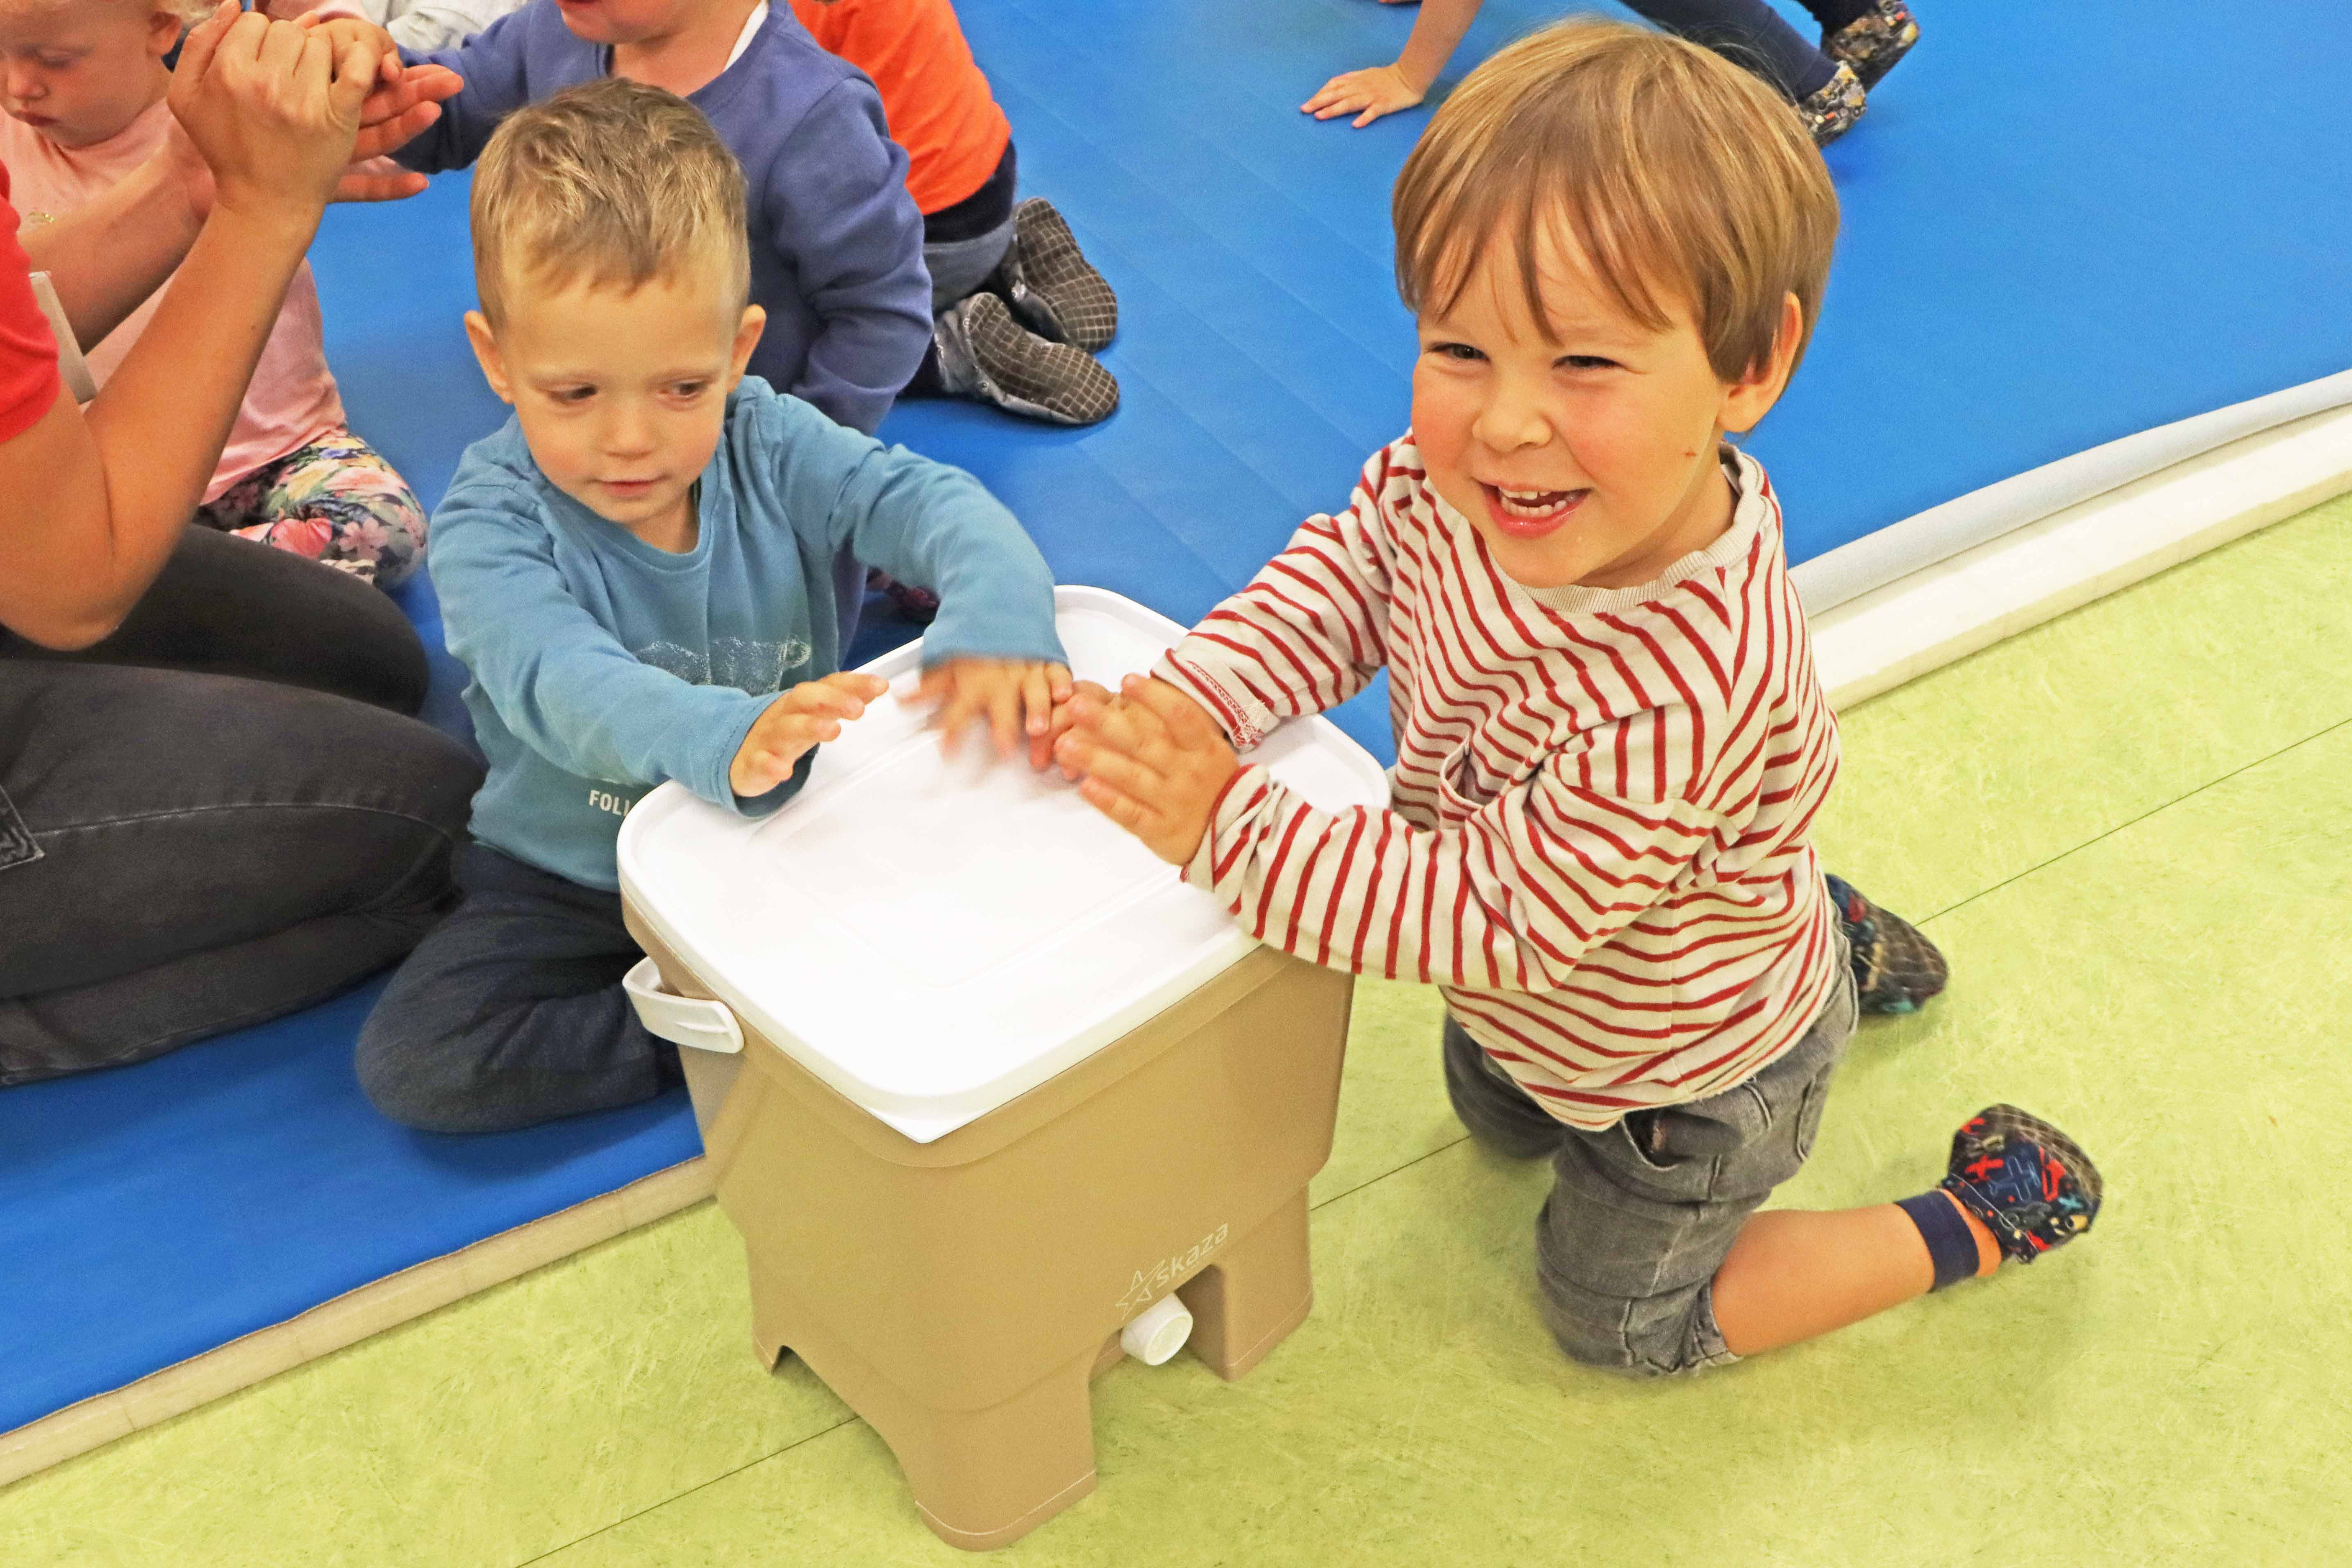 Kids from the kindergarten will collect used toothbrushes, wrom which Skaza will create Bokashi Organko composters